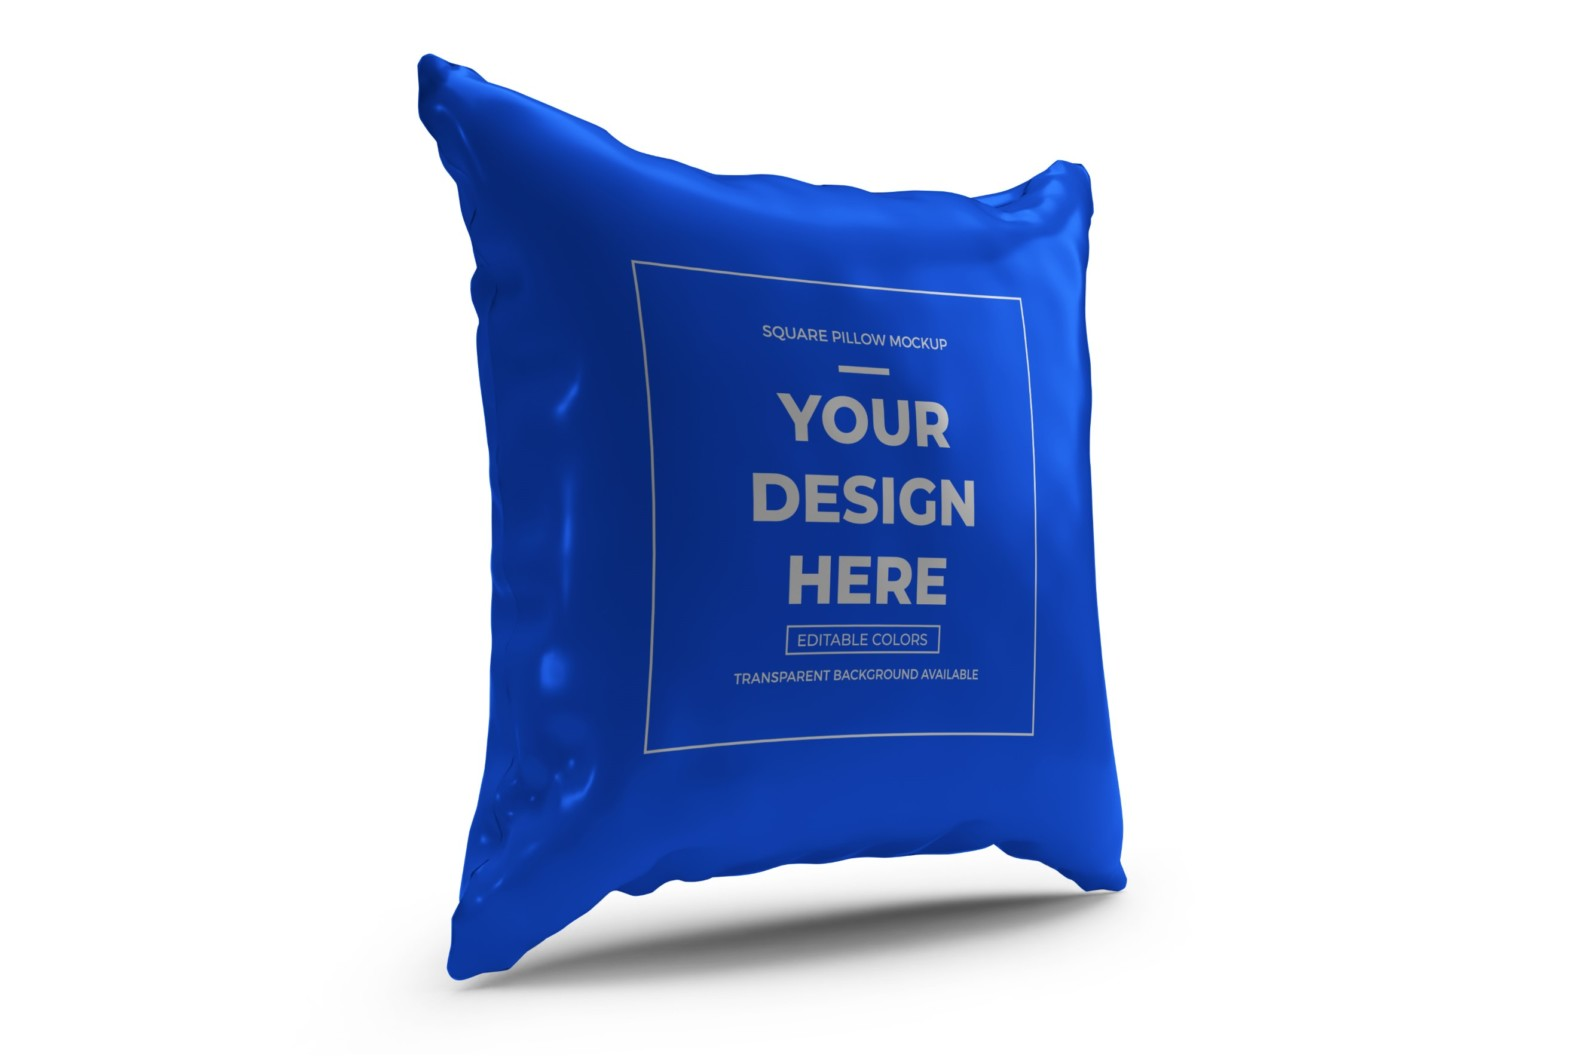 Square Pillow Mockup Template Bundle - 08 50 scaled -